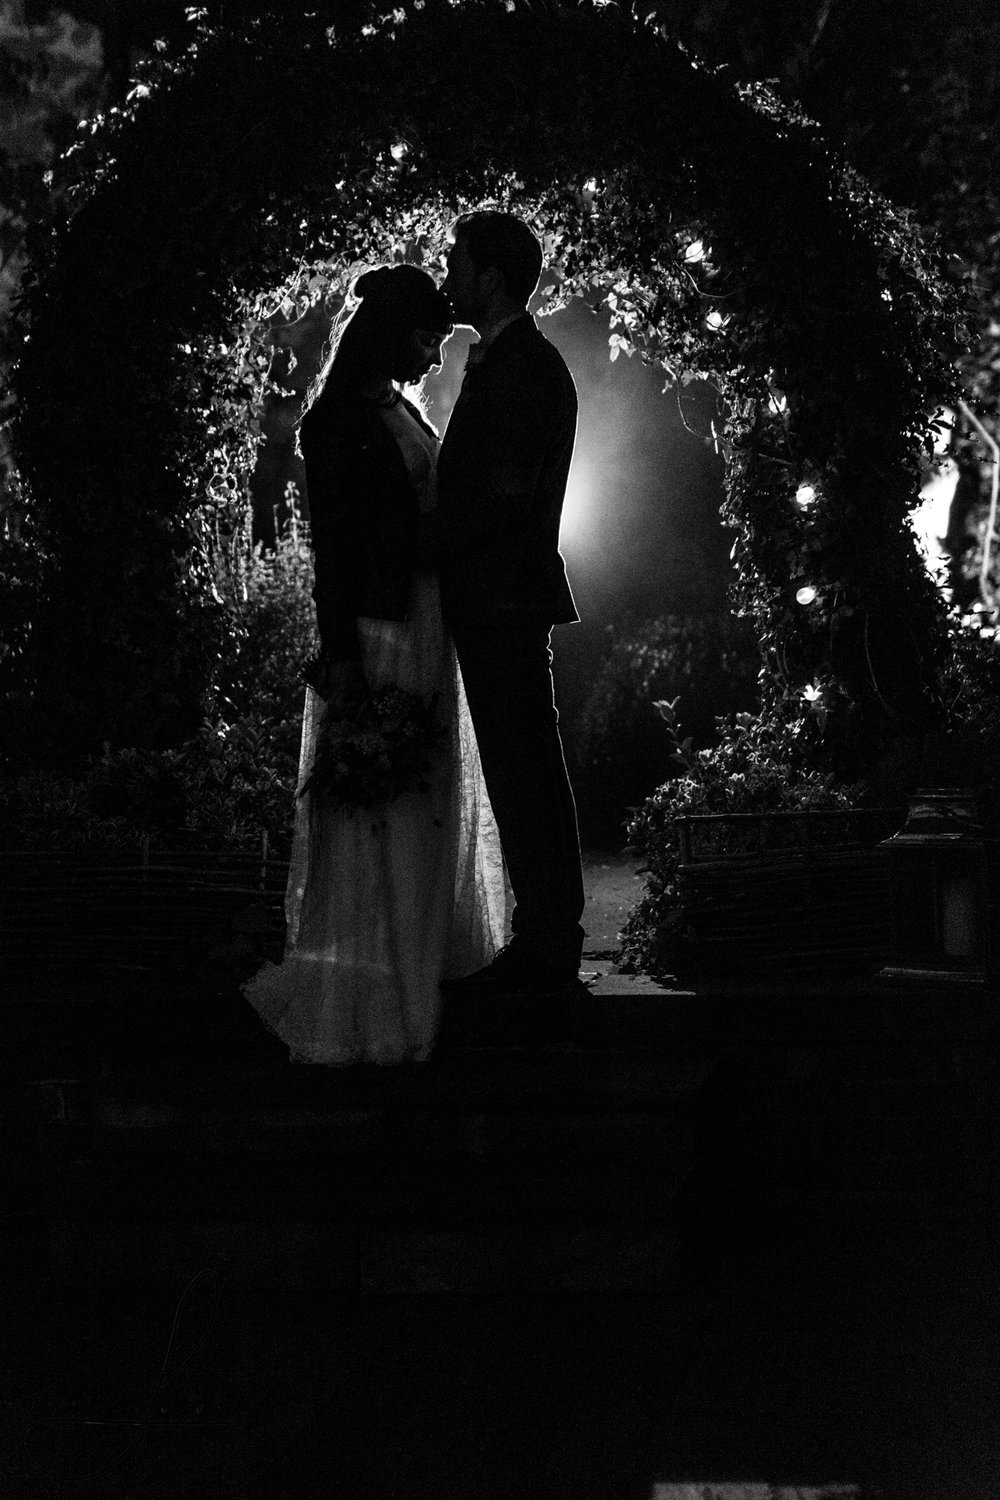 a black and white photo of the bride and groom outside their wedding venue at night